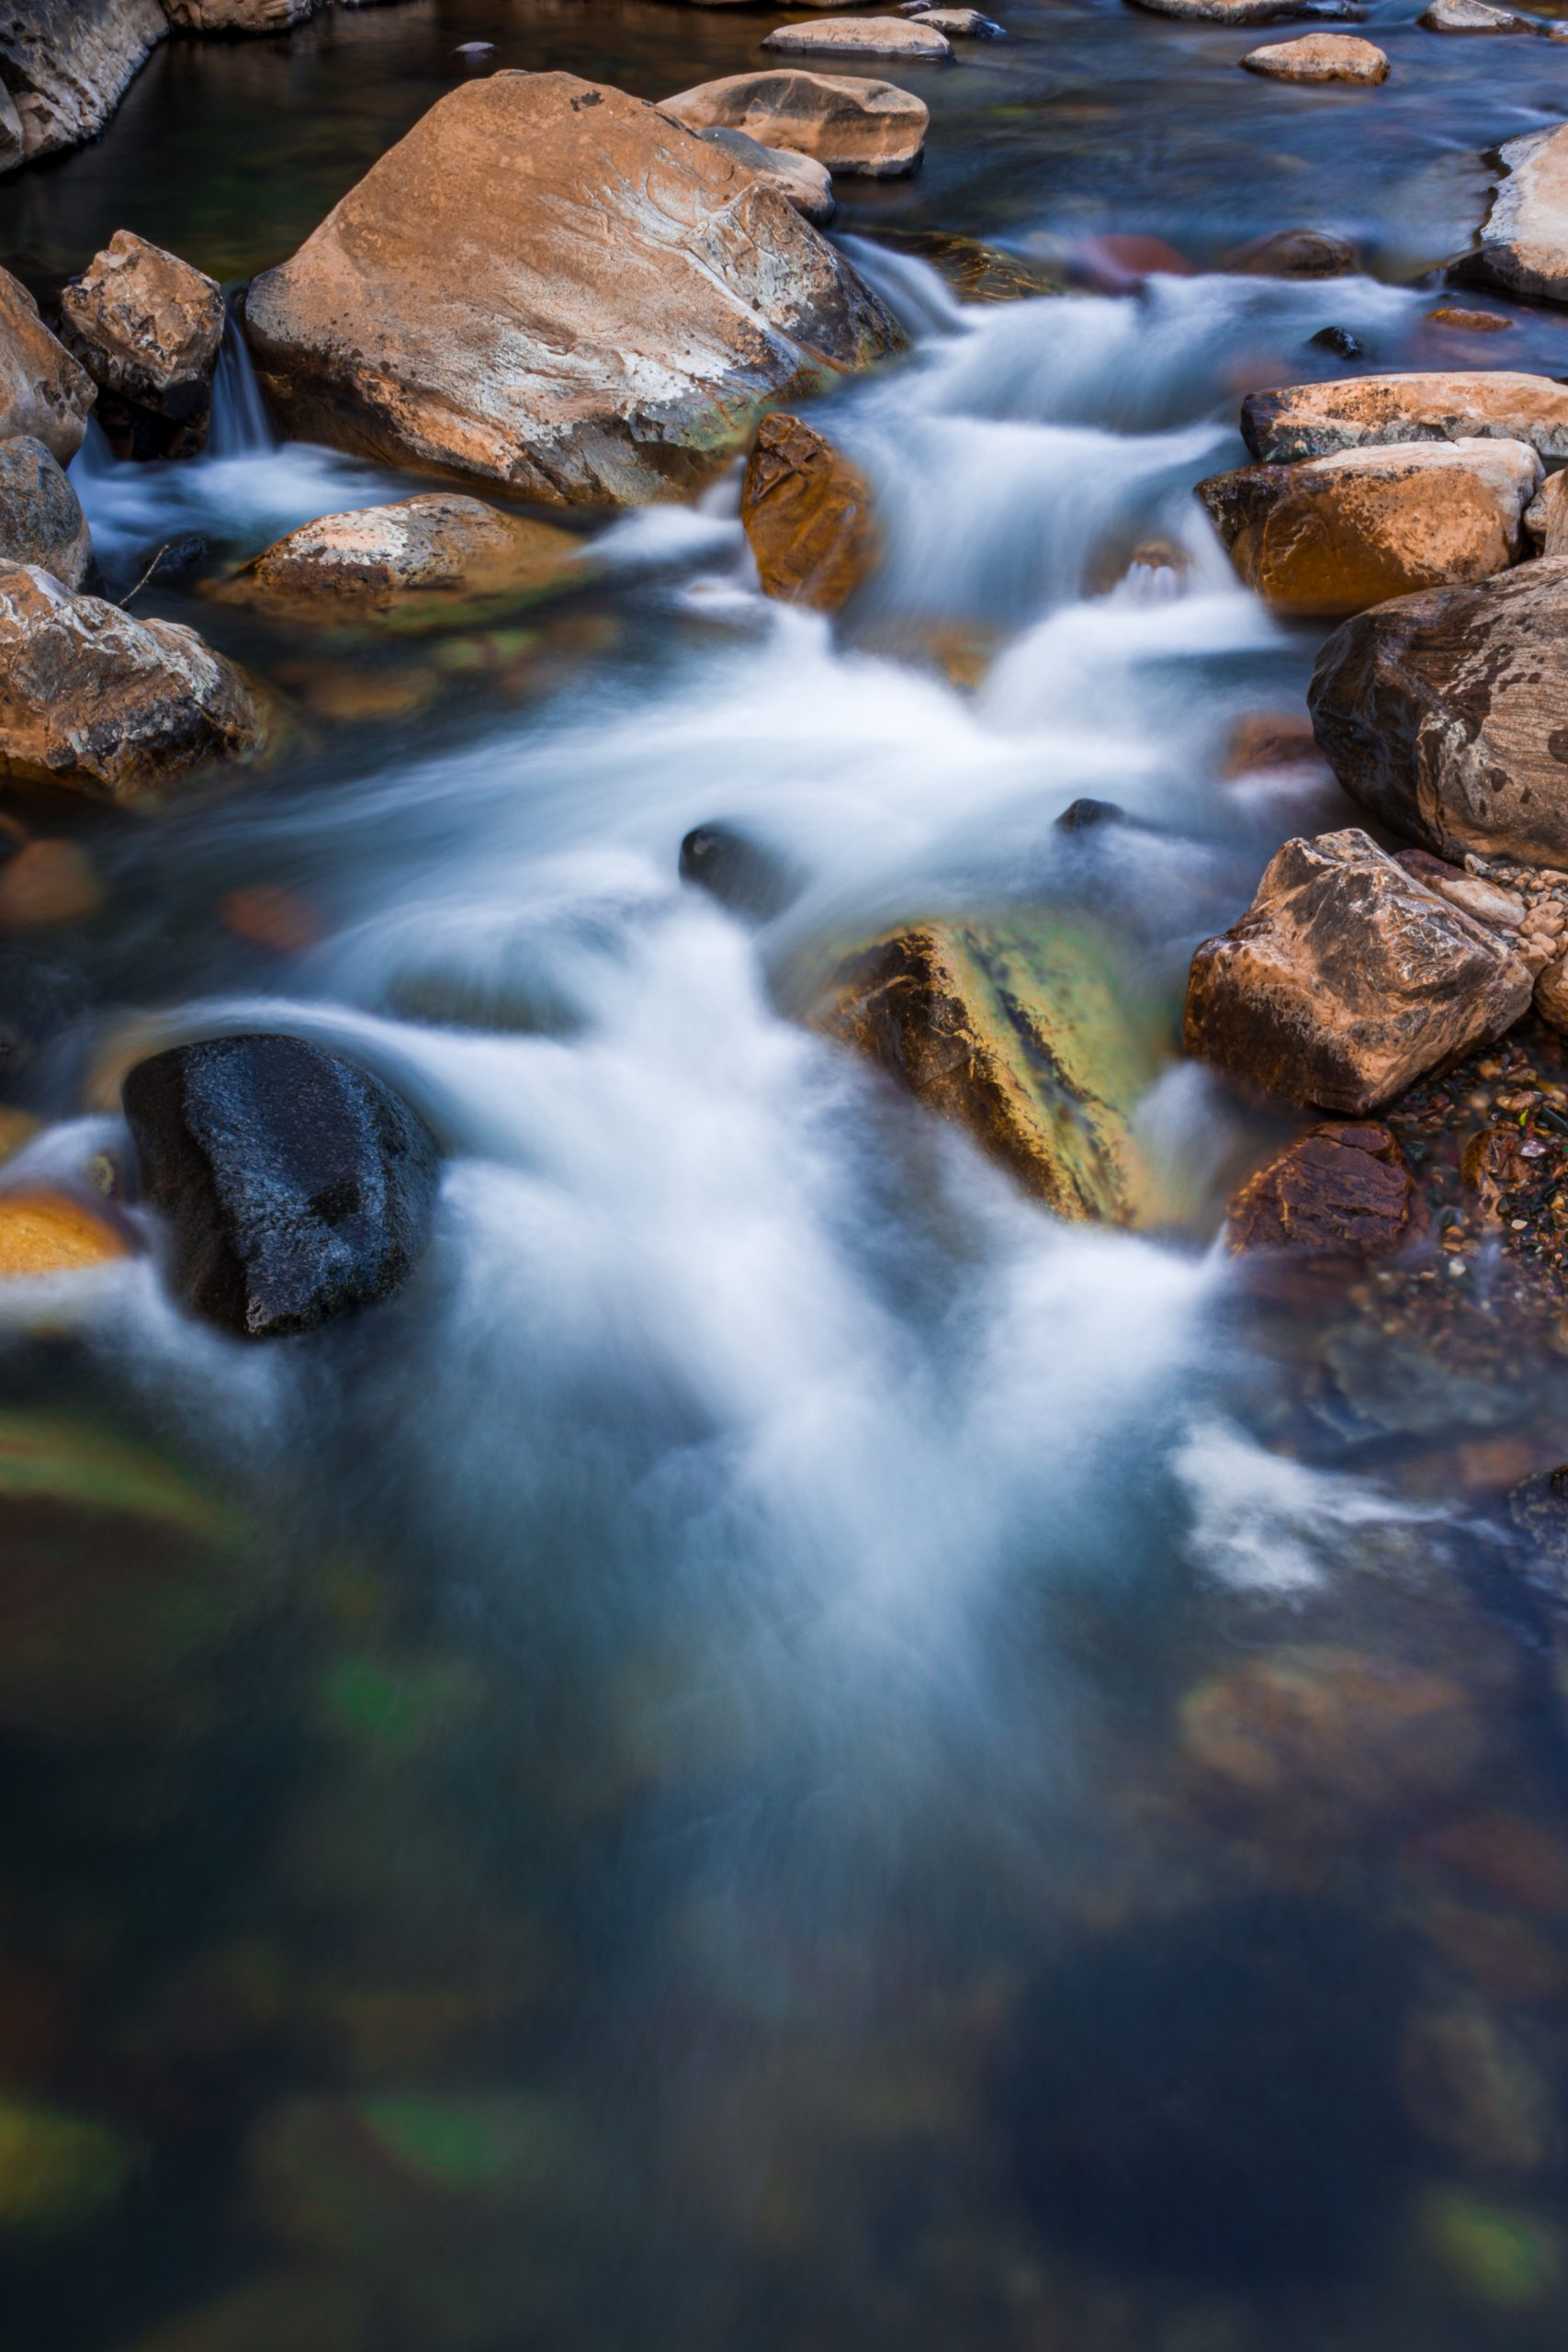 Portrait of a water flowing through the rocks